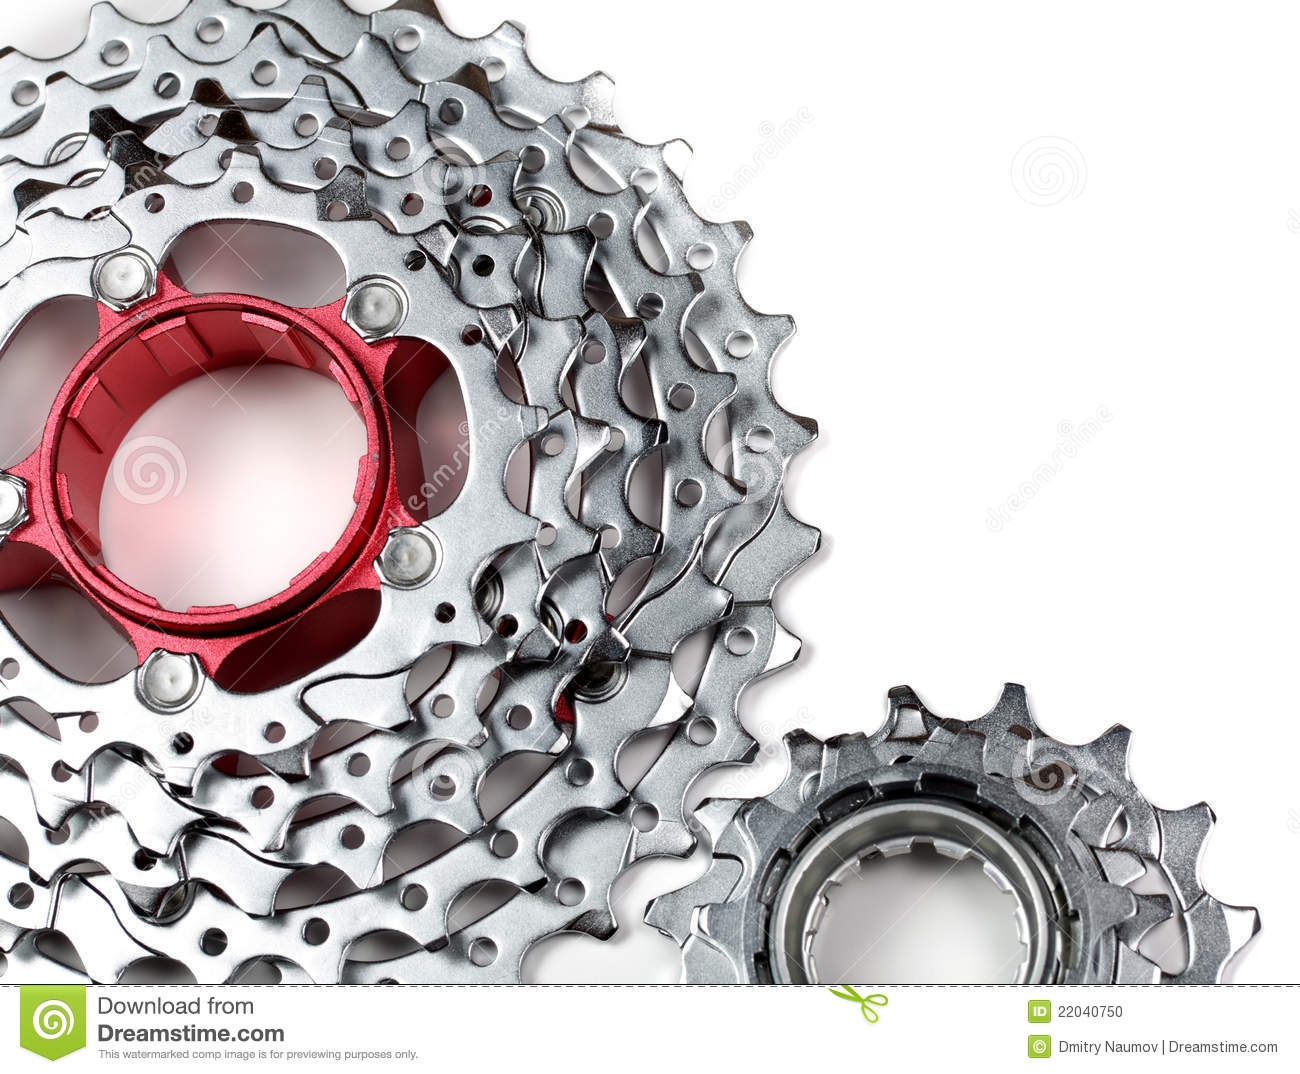 how to change chainrings on a mountain bike